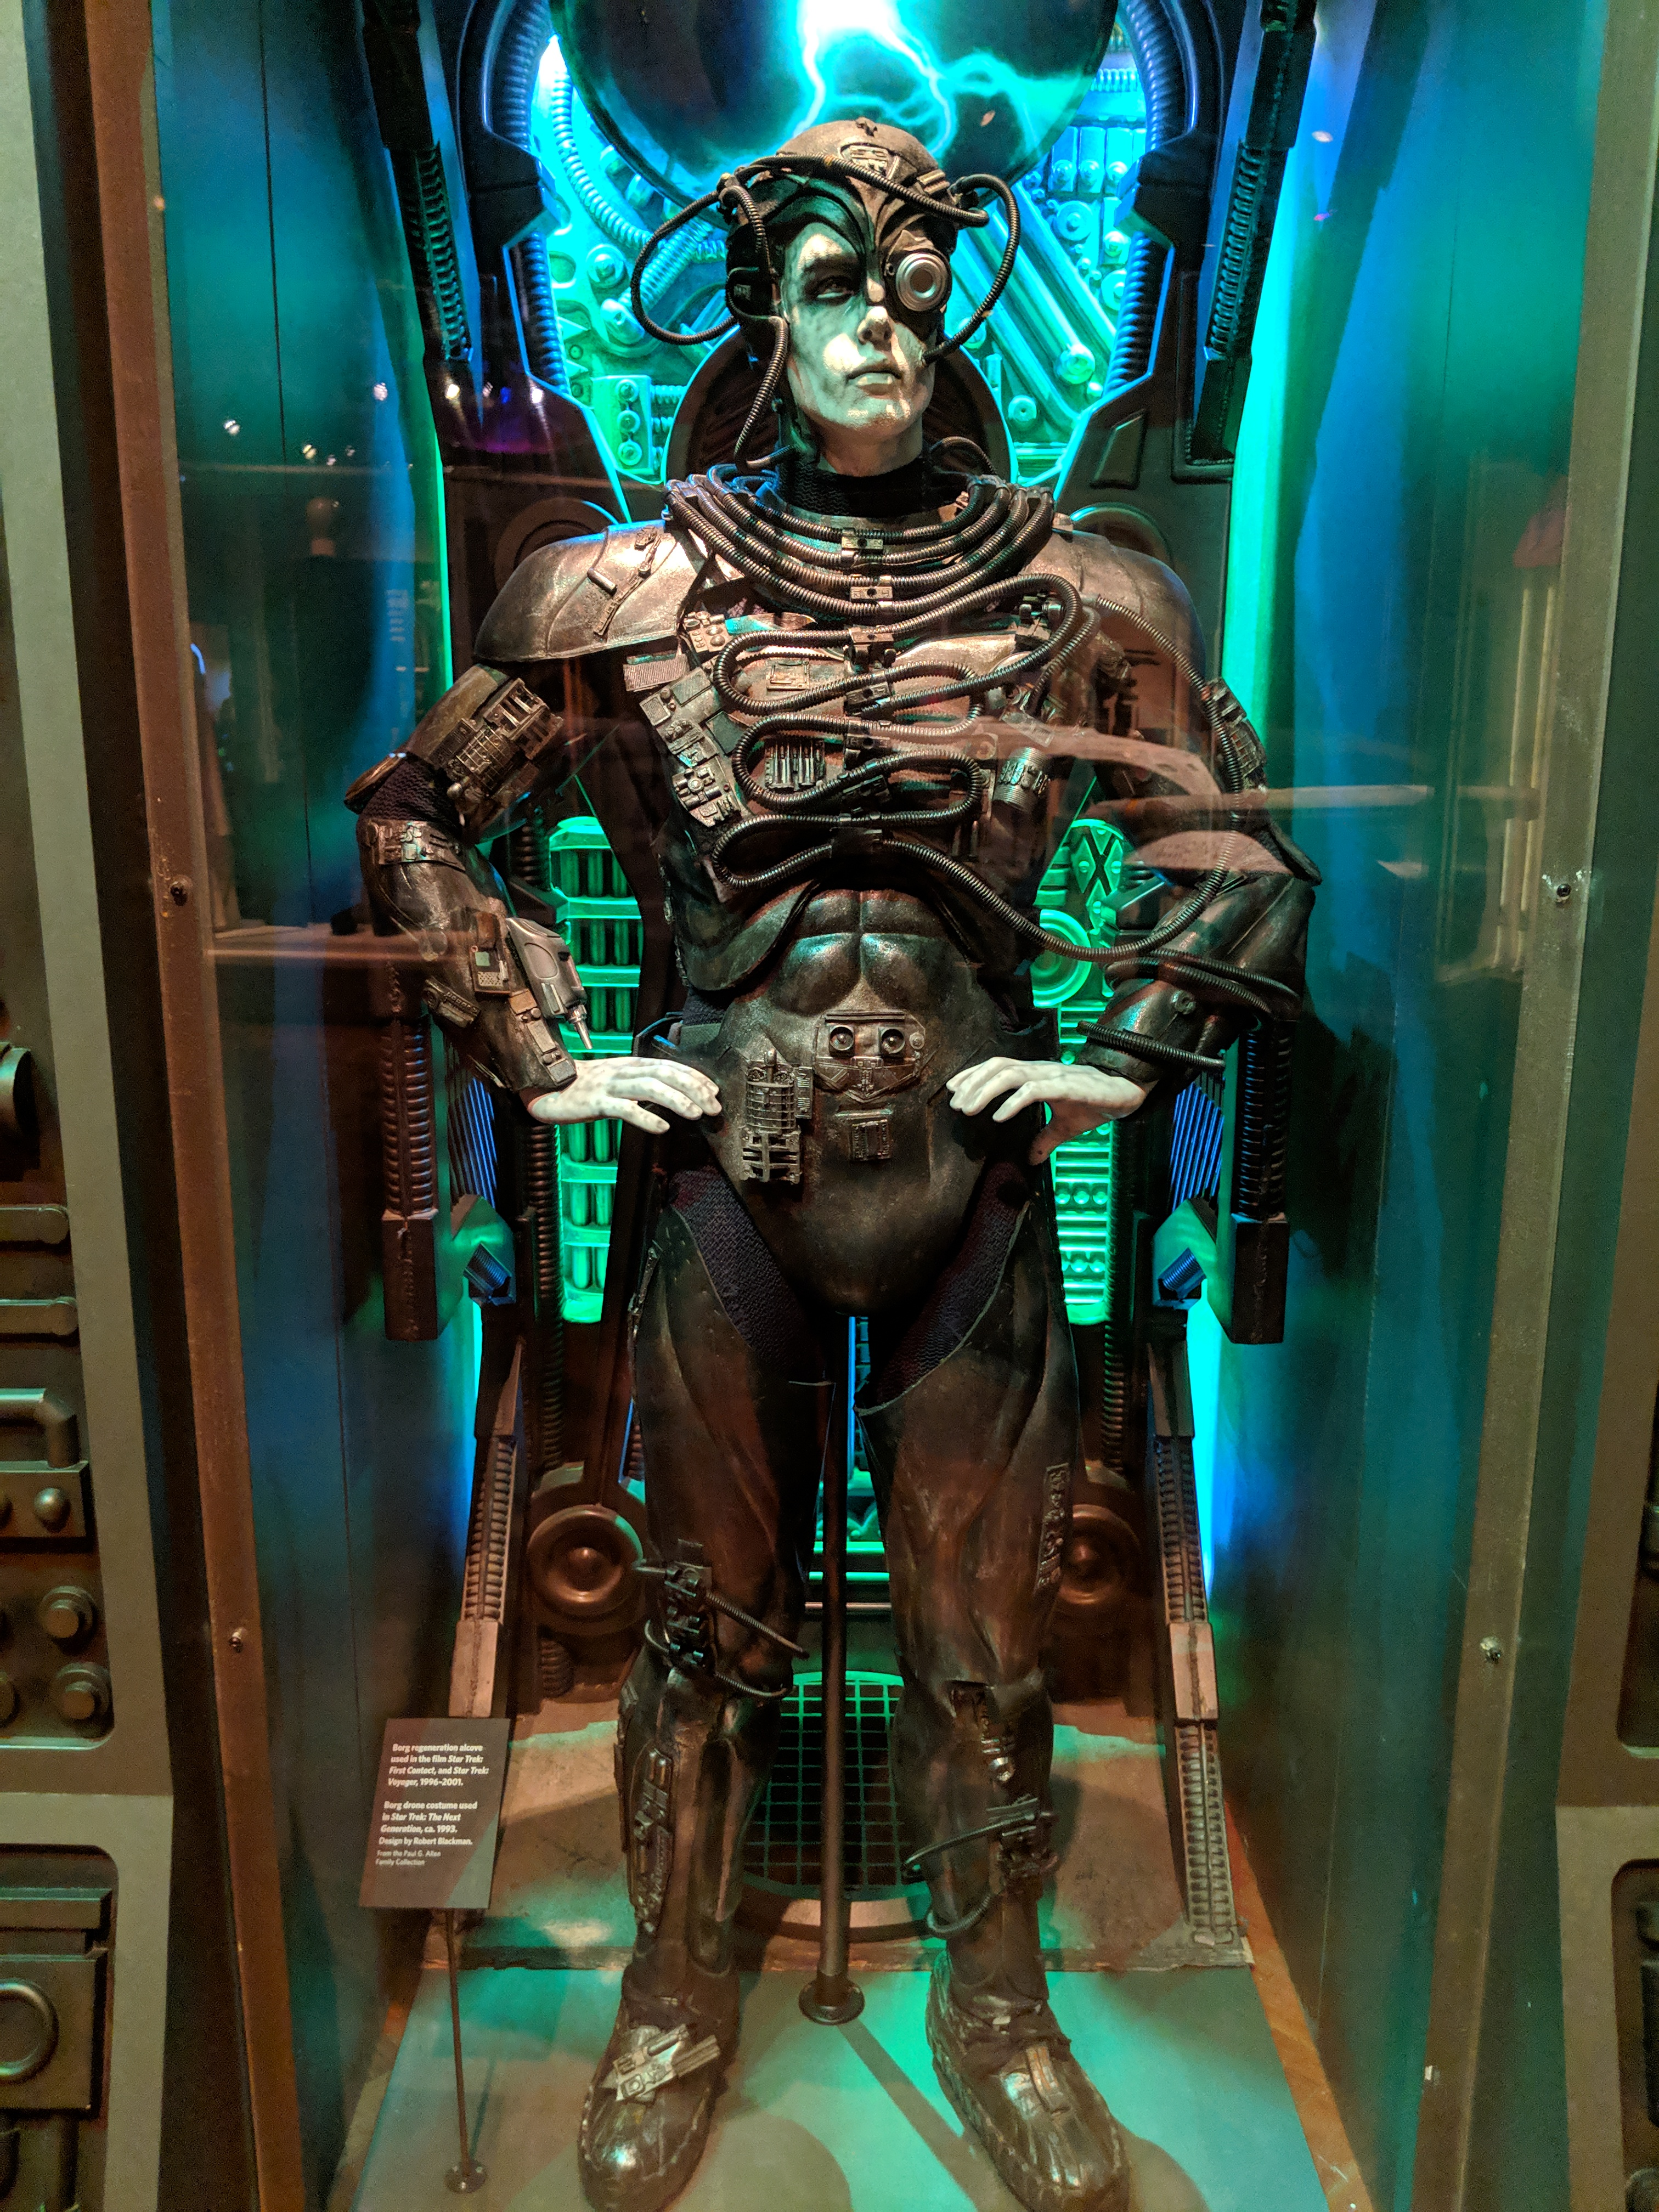 Photo of Borg alcove and Borg costume